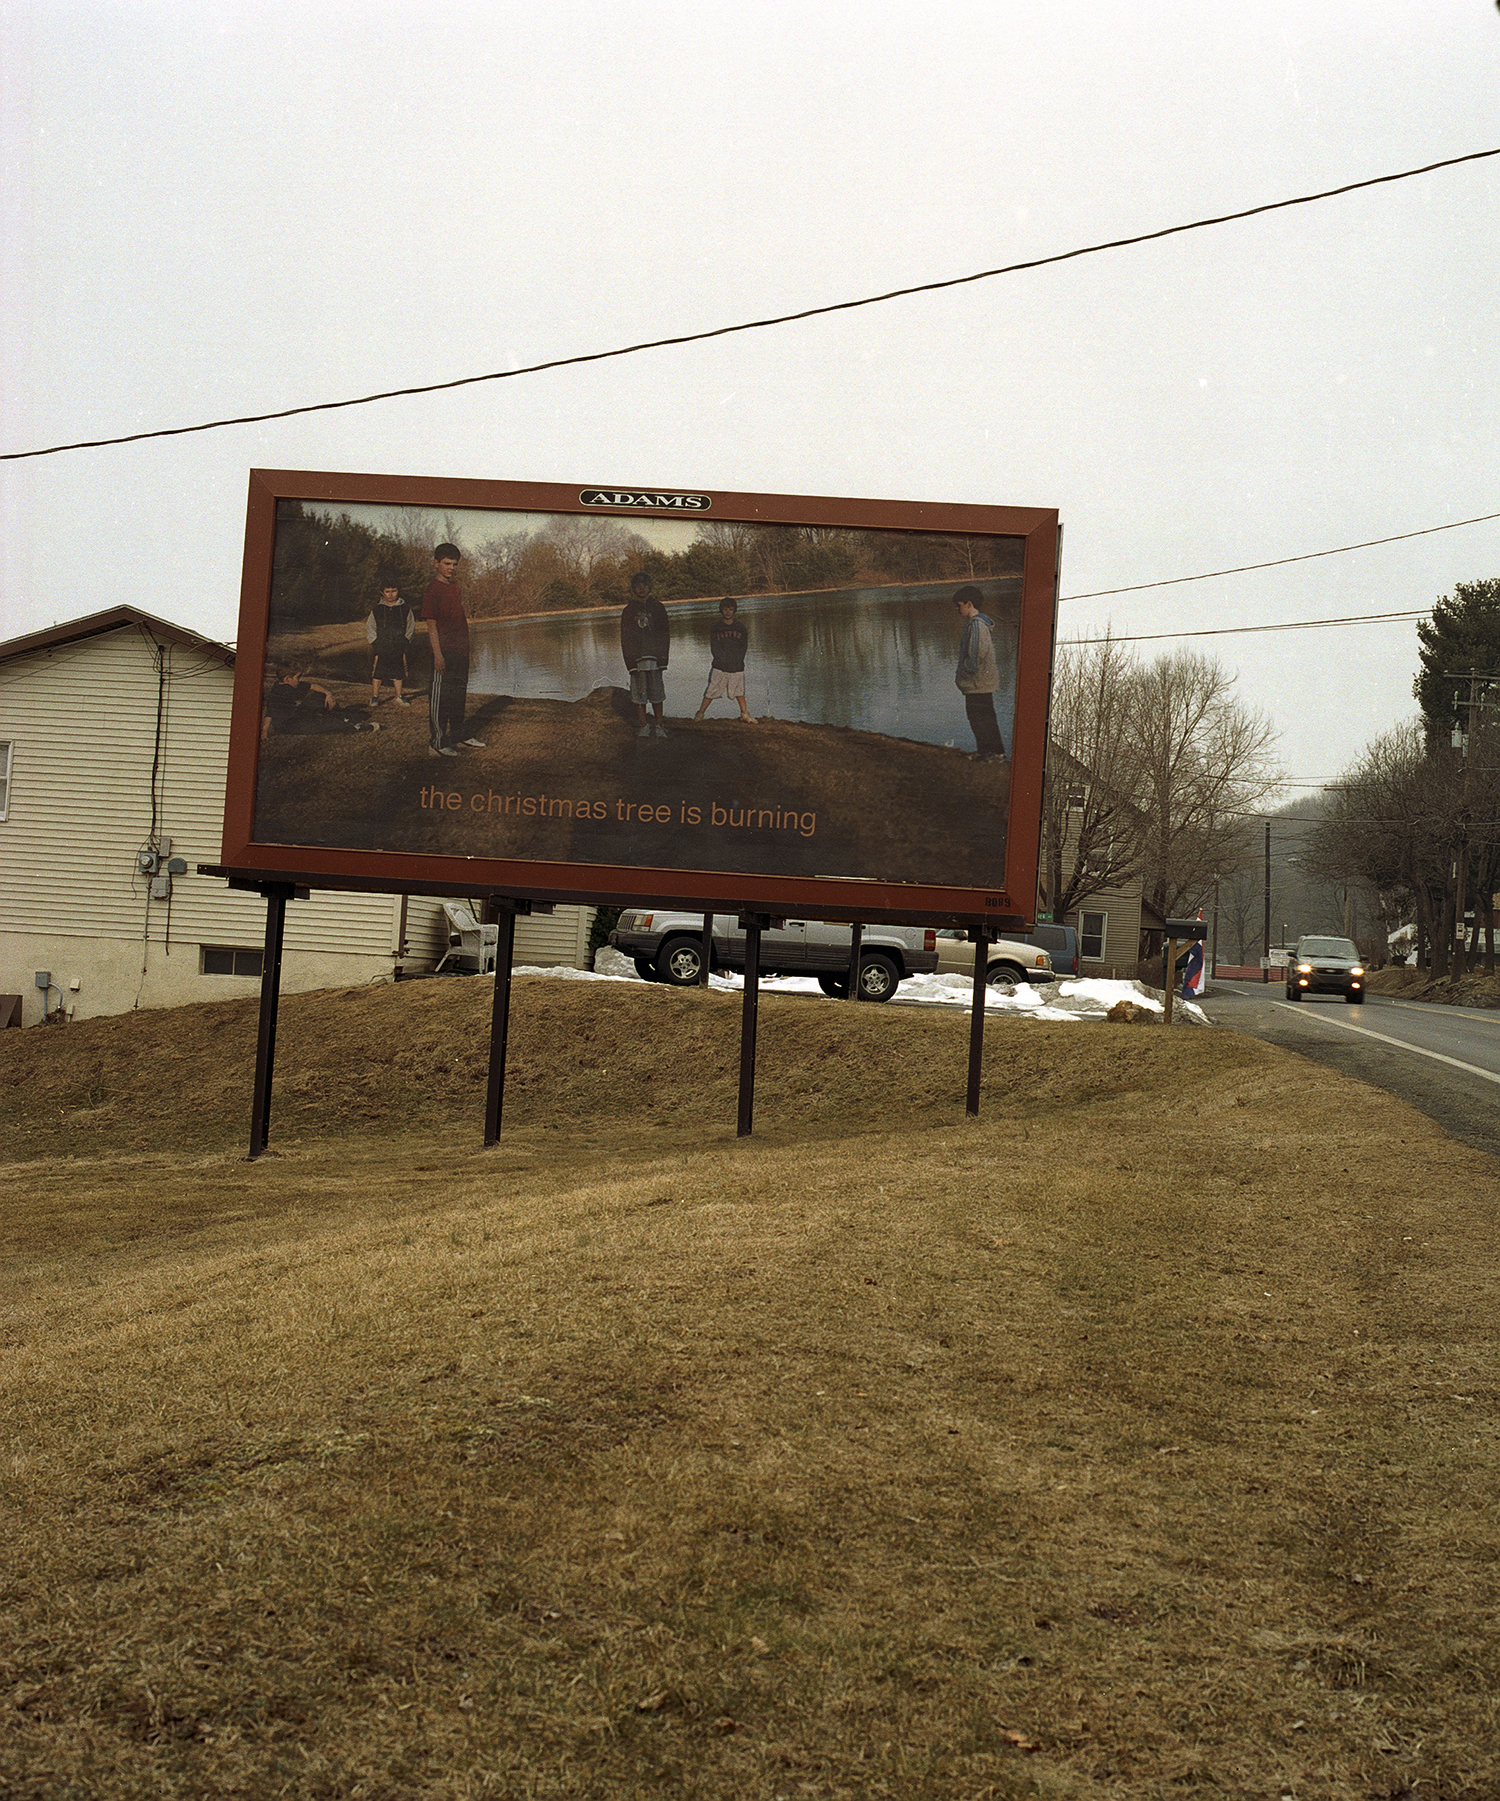 The Christmas Tree is Burning, 1/4 Billboards, Lehigh Valley, PA,   2006